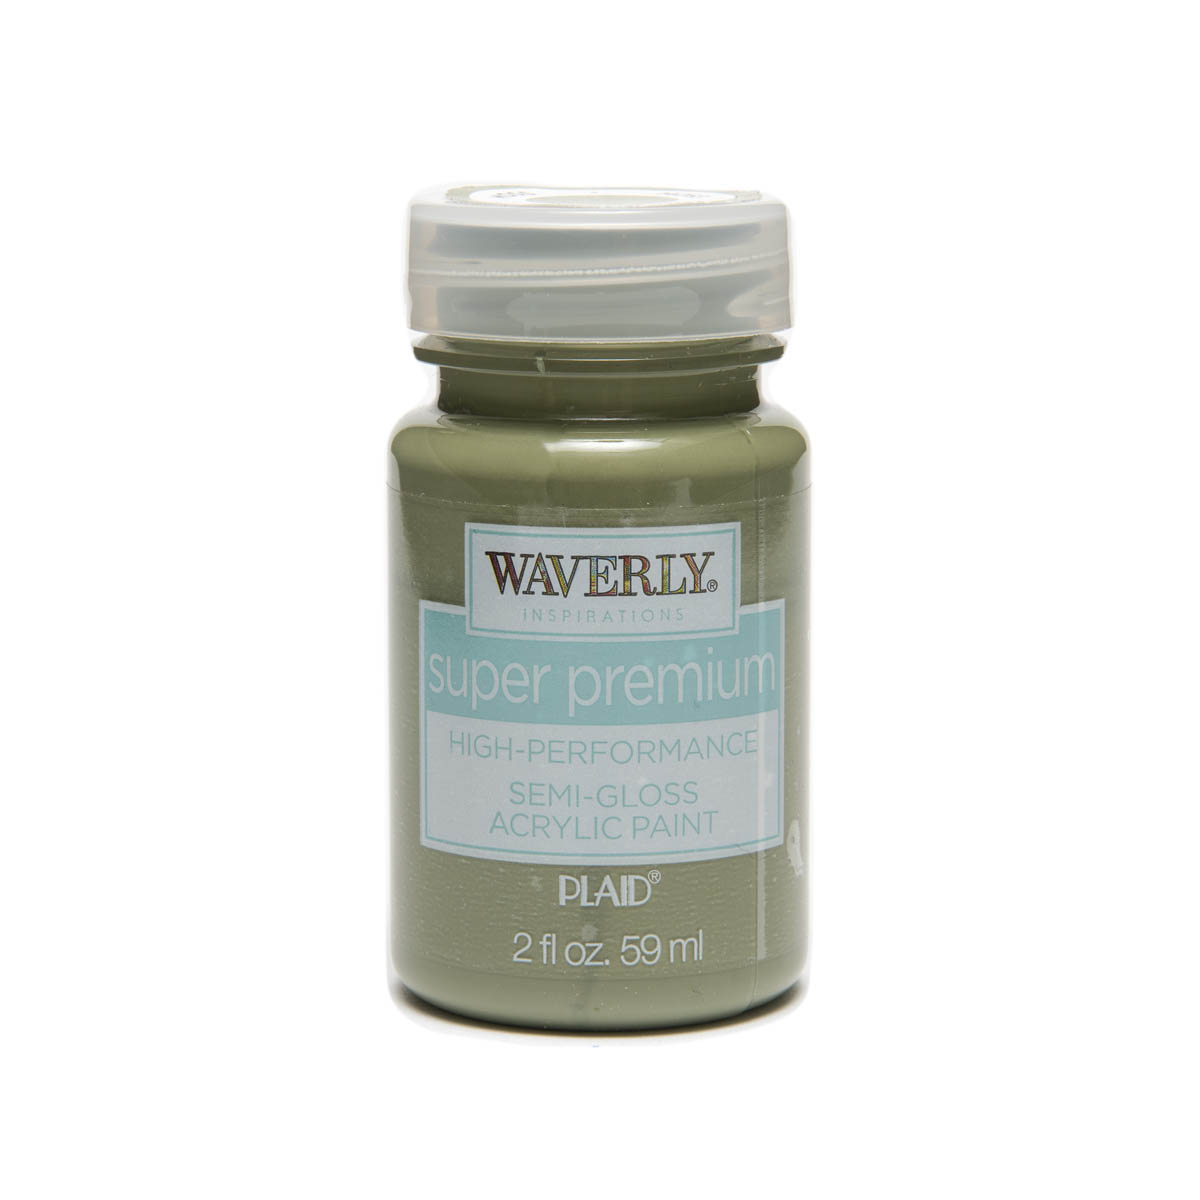 Waverly ® Inspirations Super Premium Semi-Gloss Acrylic Paint - Moss, 2 oz.